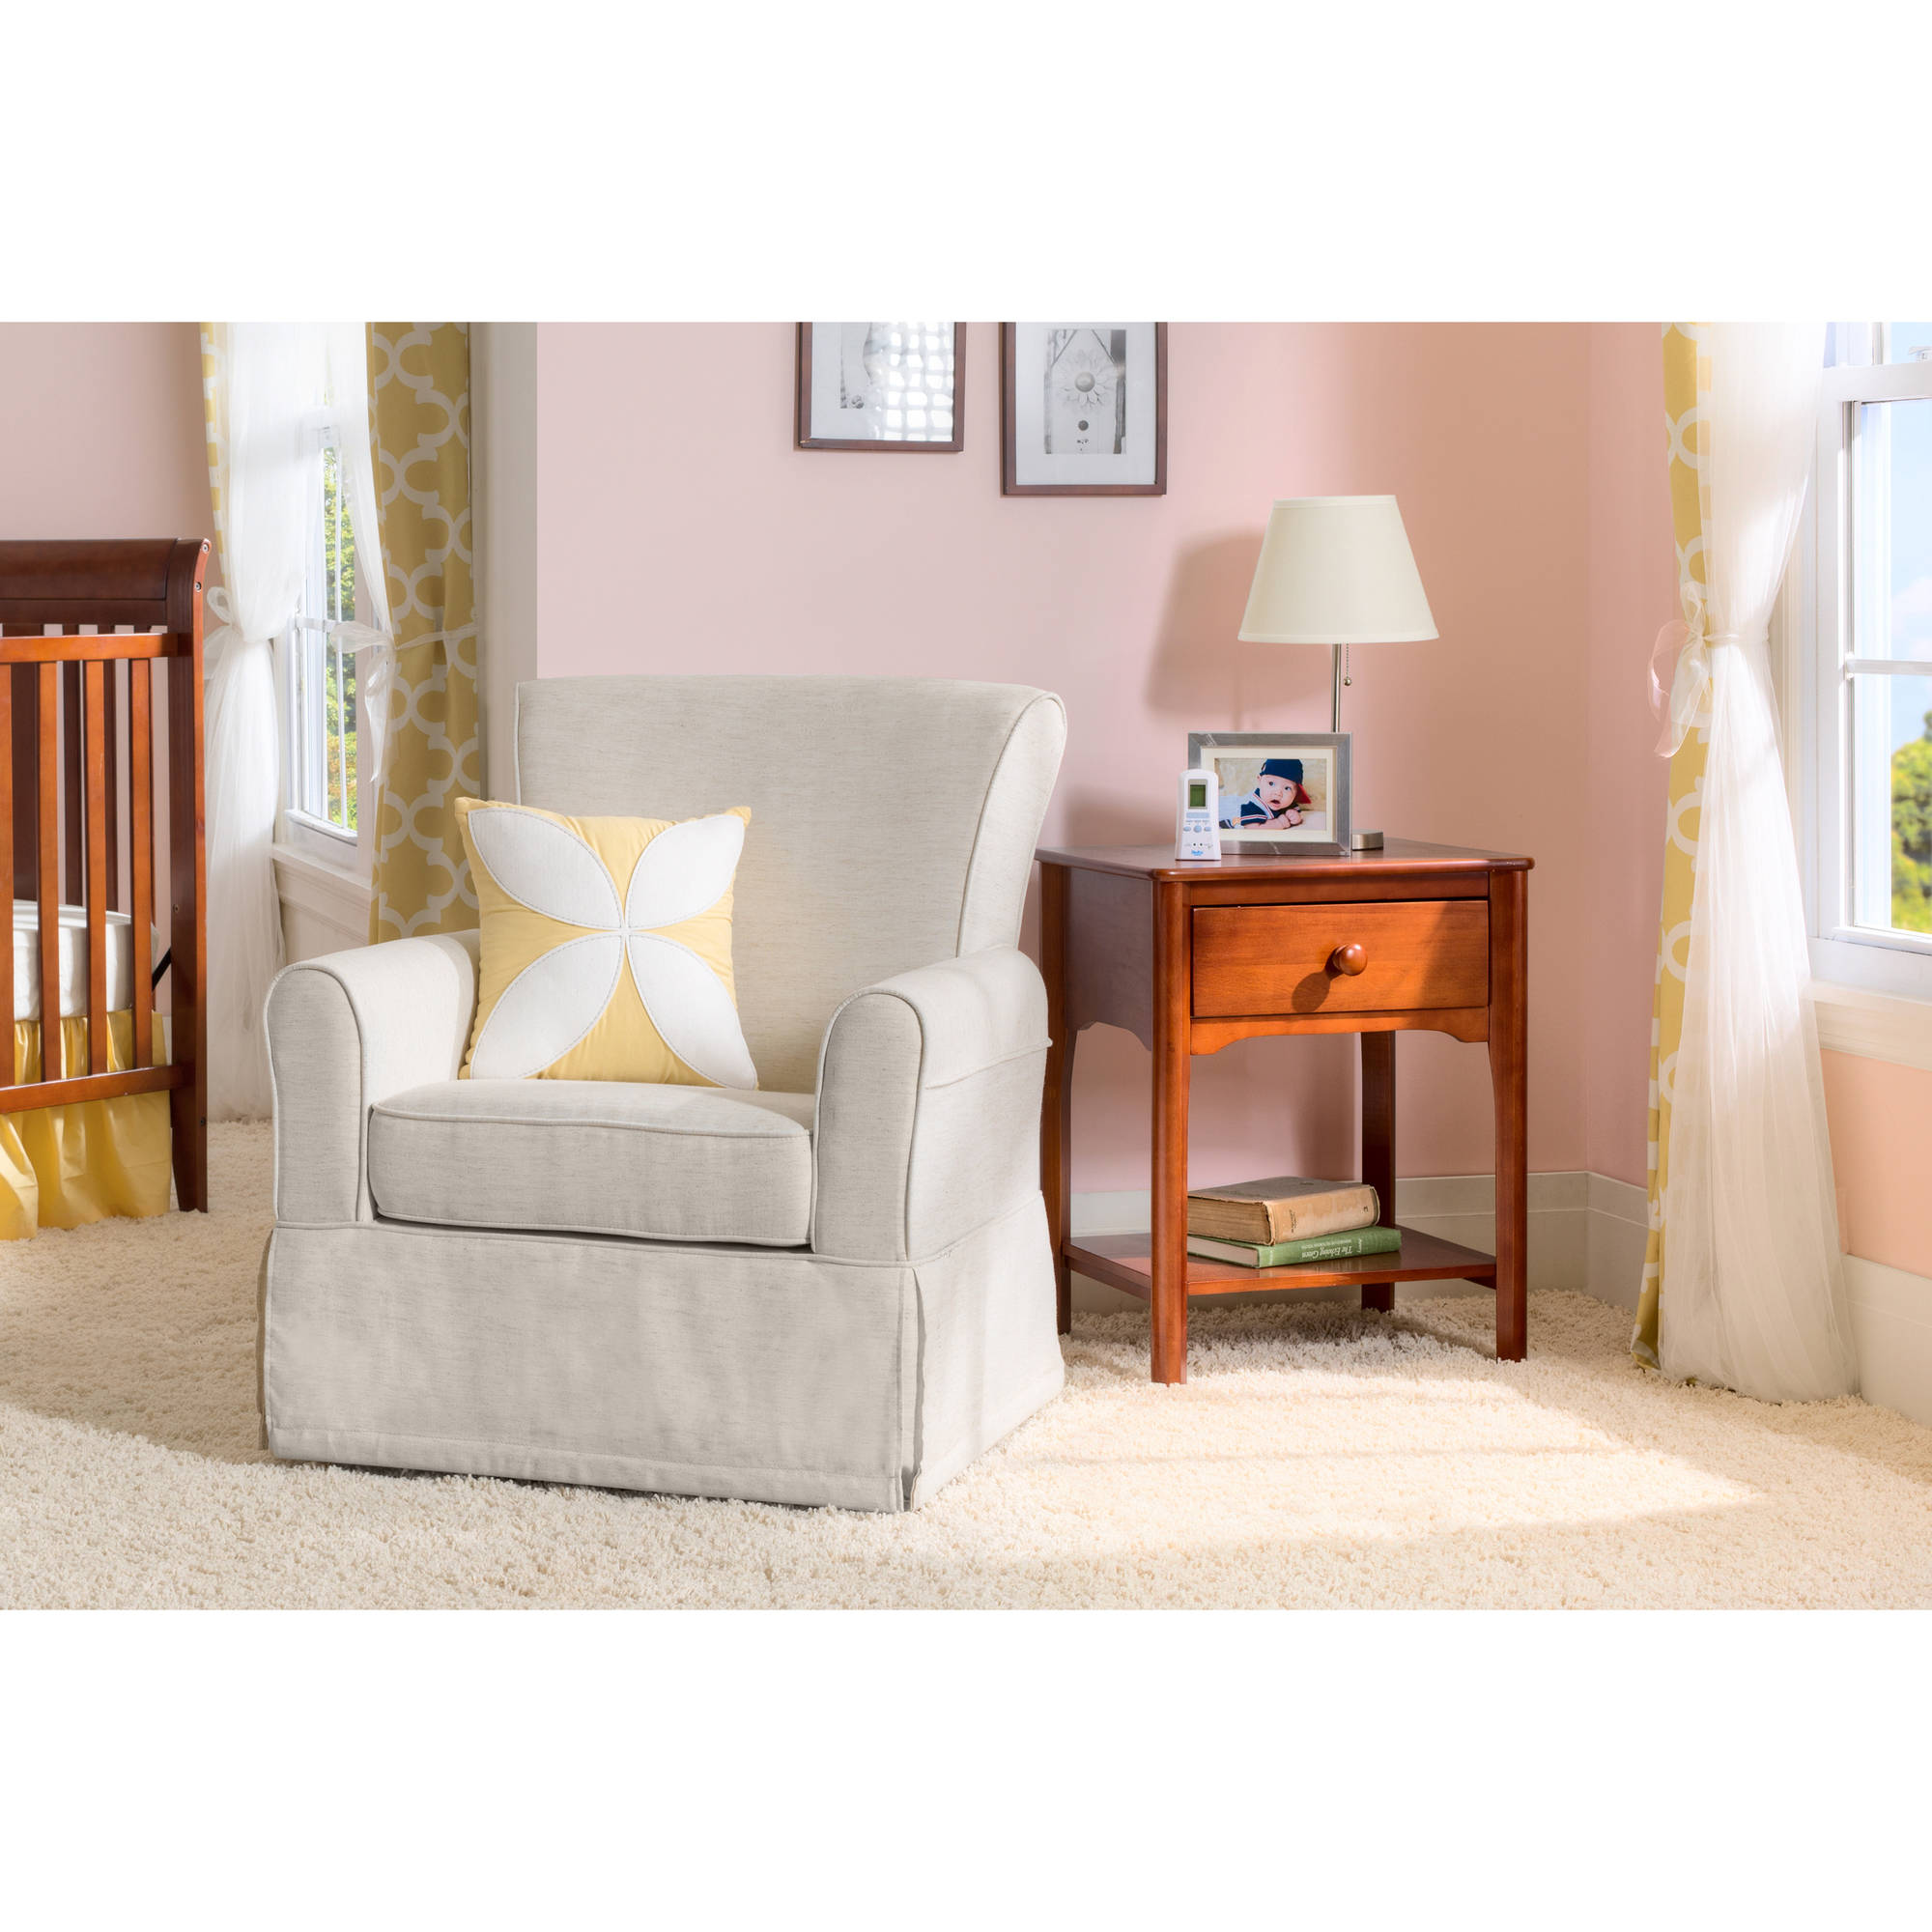 Delta Children Epic Nursery Glider Swivel Rocker Chair, Sand by Delta Children